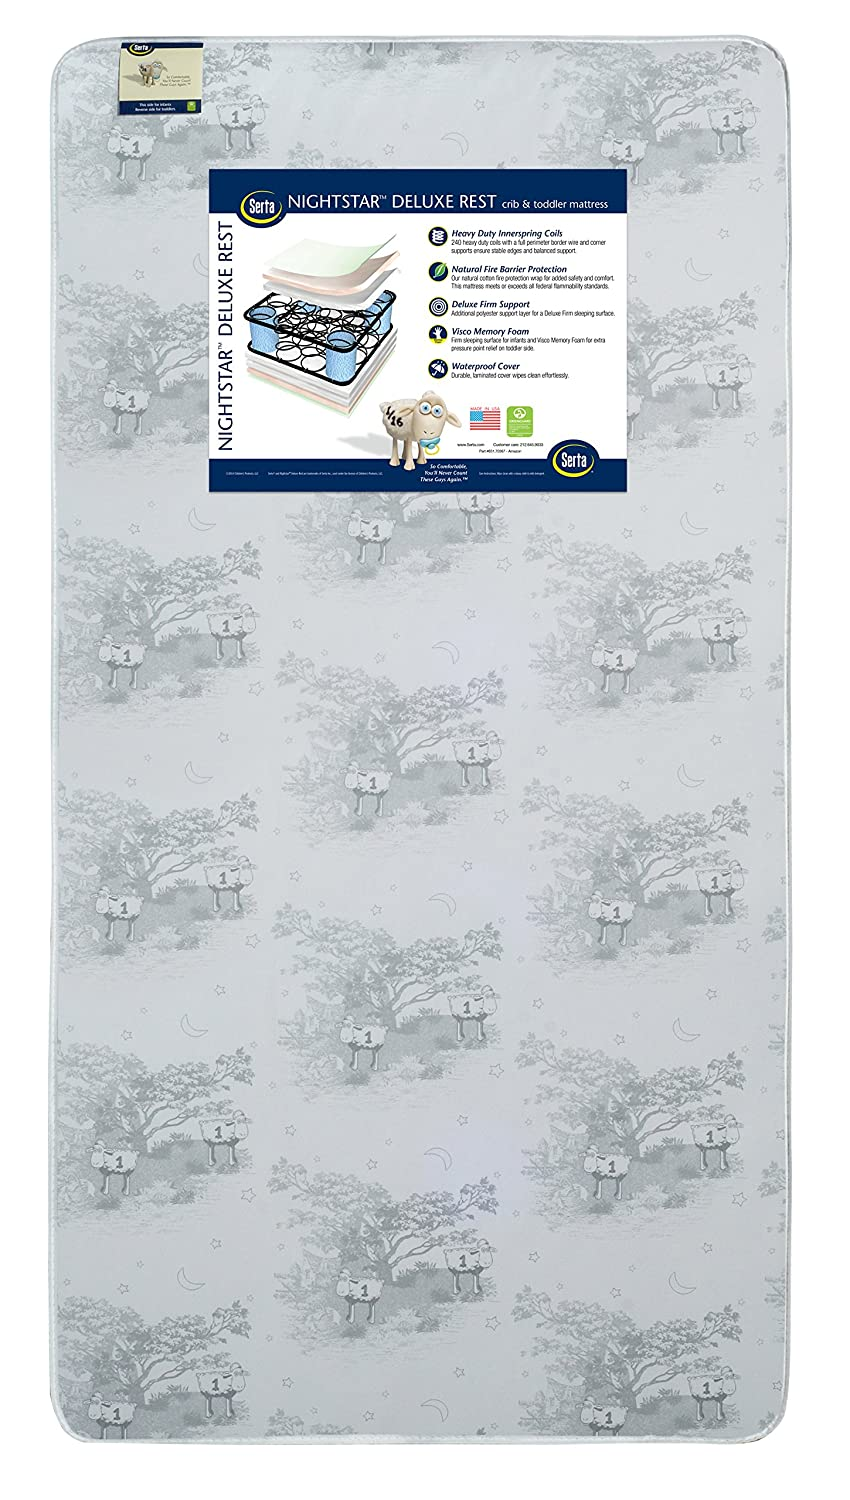 amazon com serta nightstar deluxe rest crib and toddler mattress